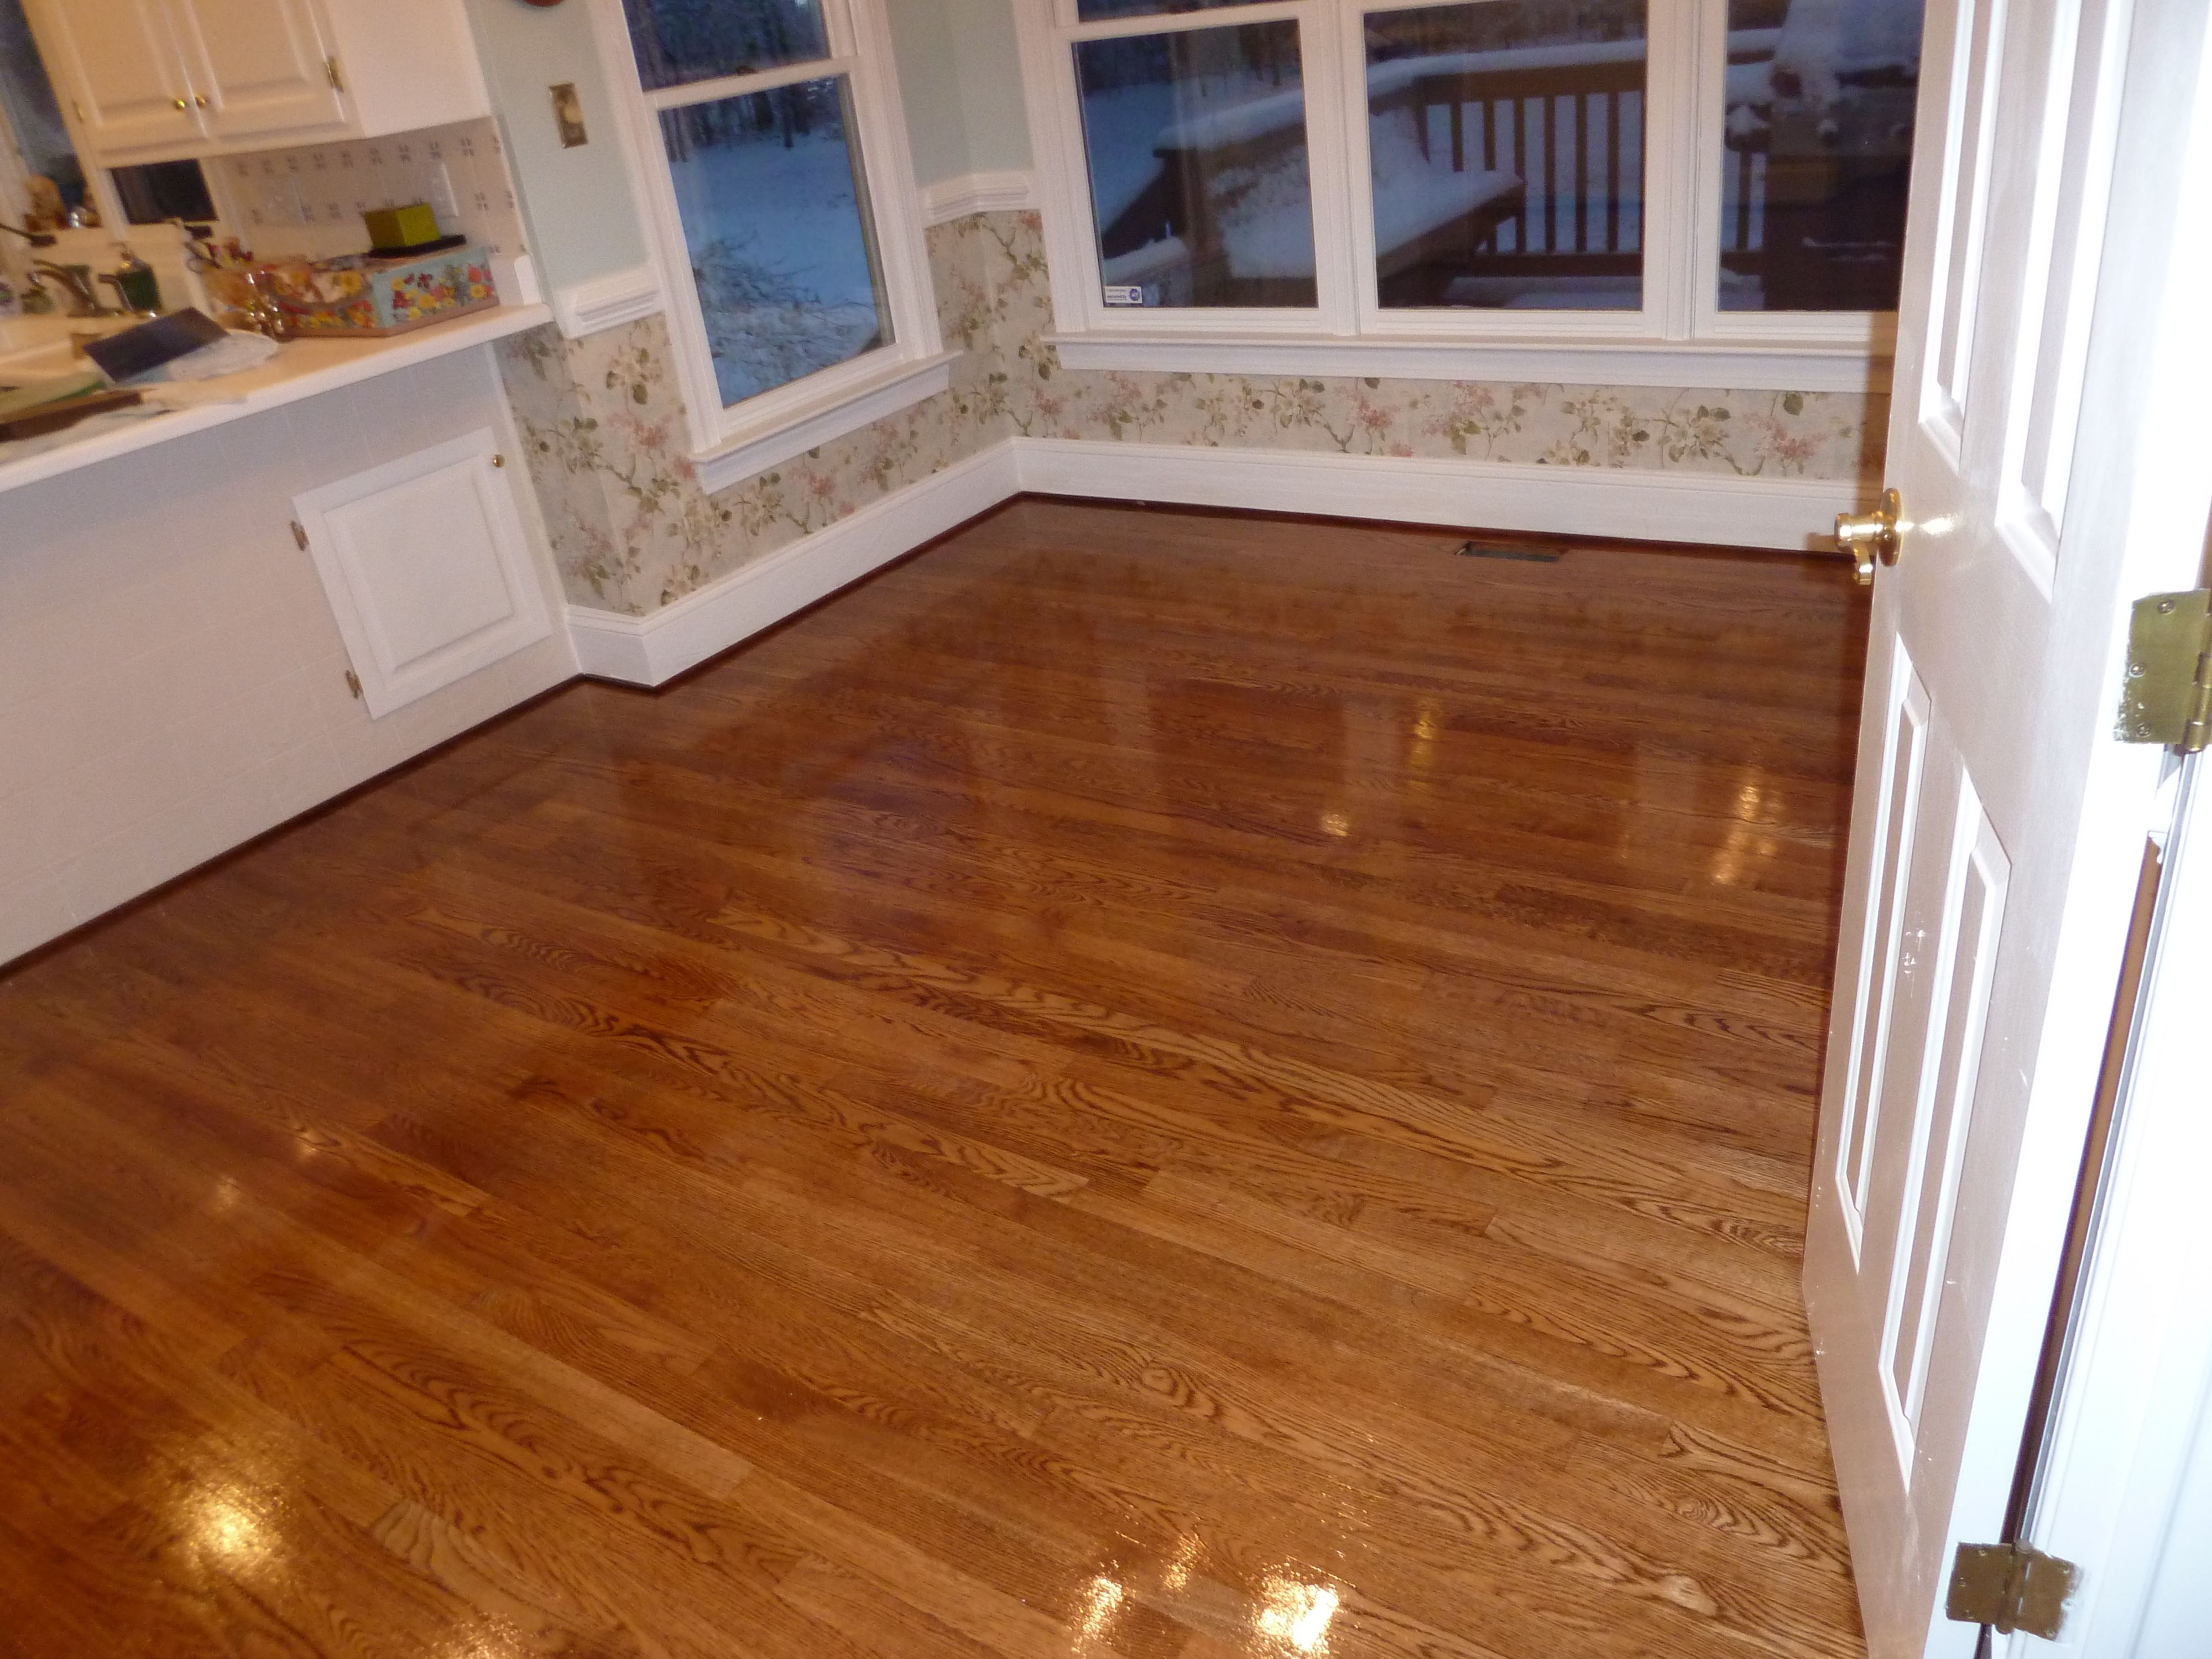 2 3 4 Red Oak Hardwood Flooring Stained Golden And Coated With A High Gloss Finish